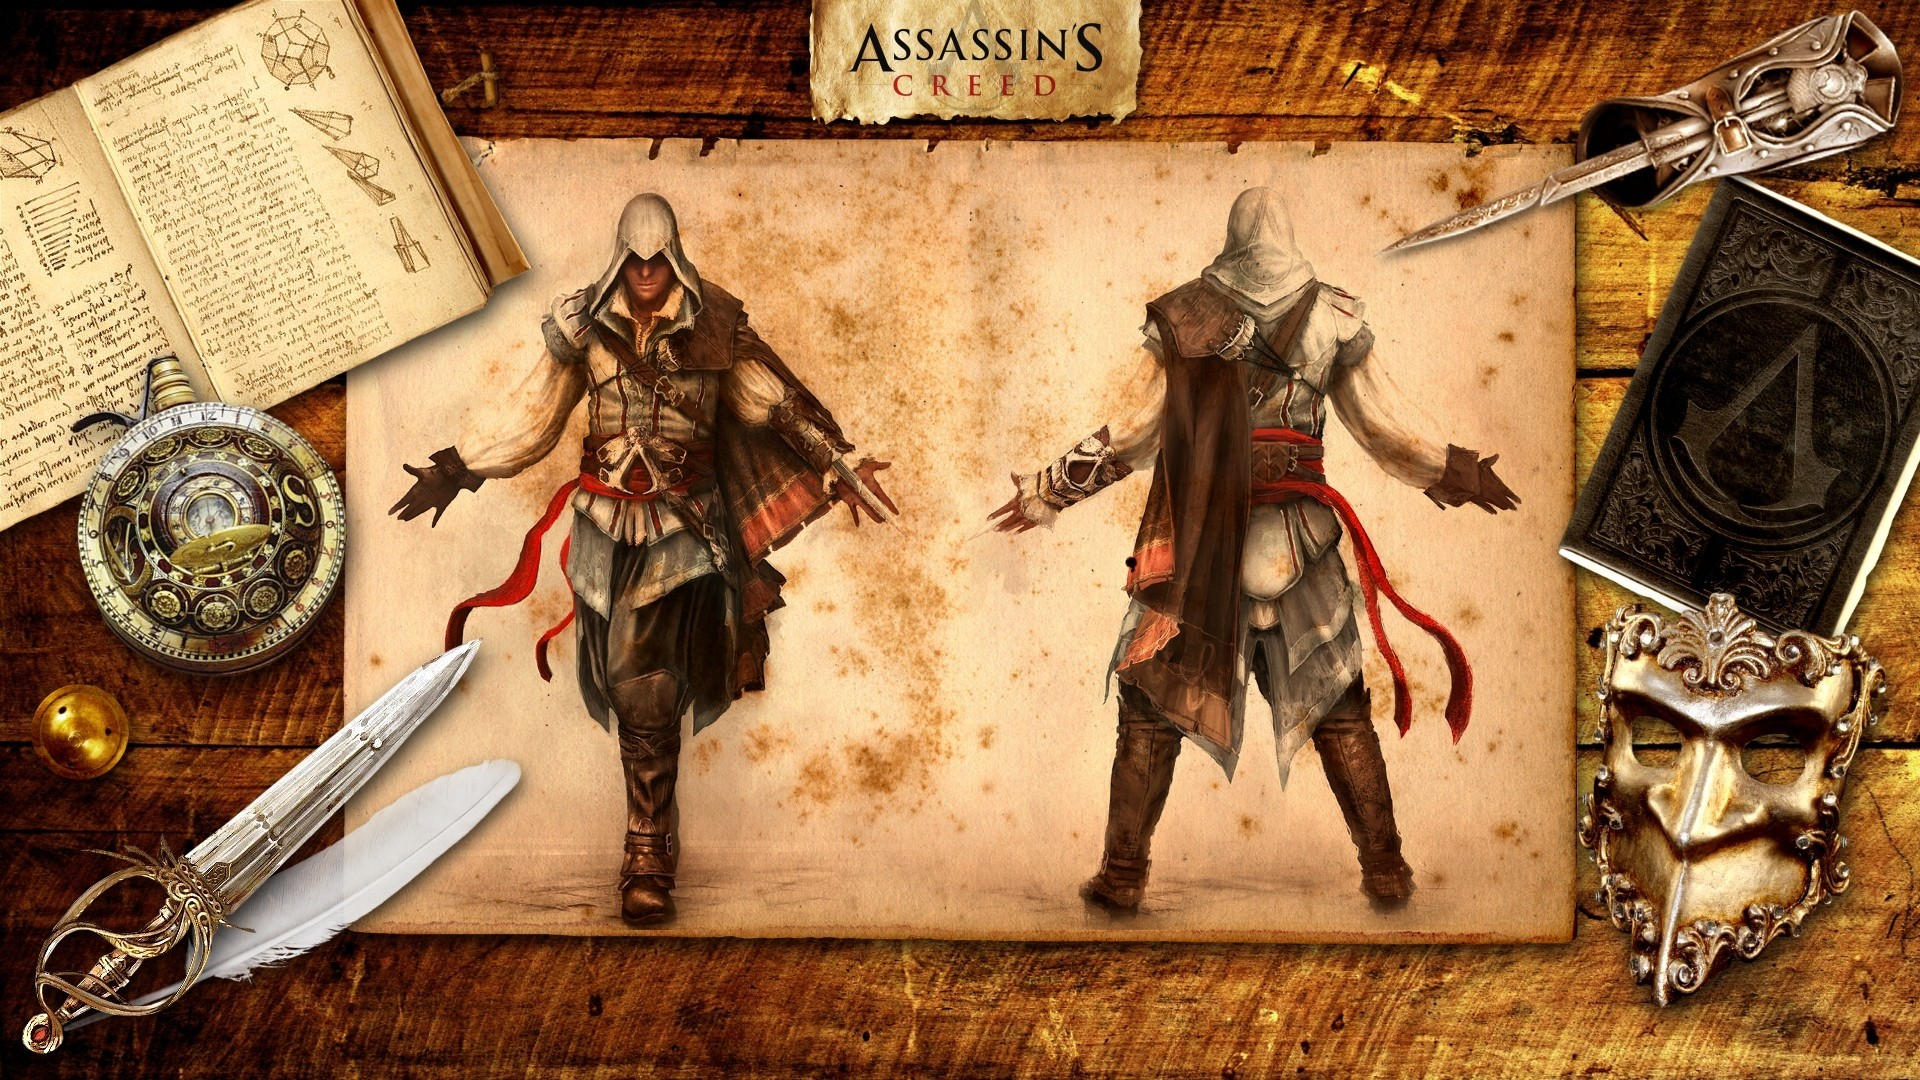 assassins creed ezio auditore HD Wallpaper